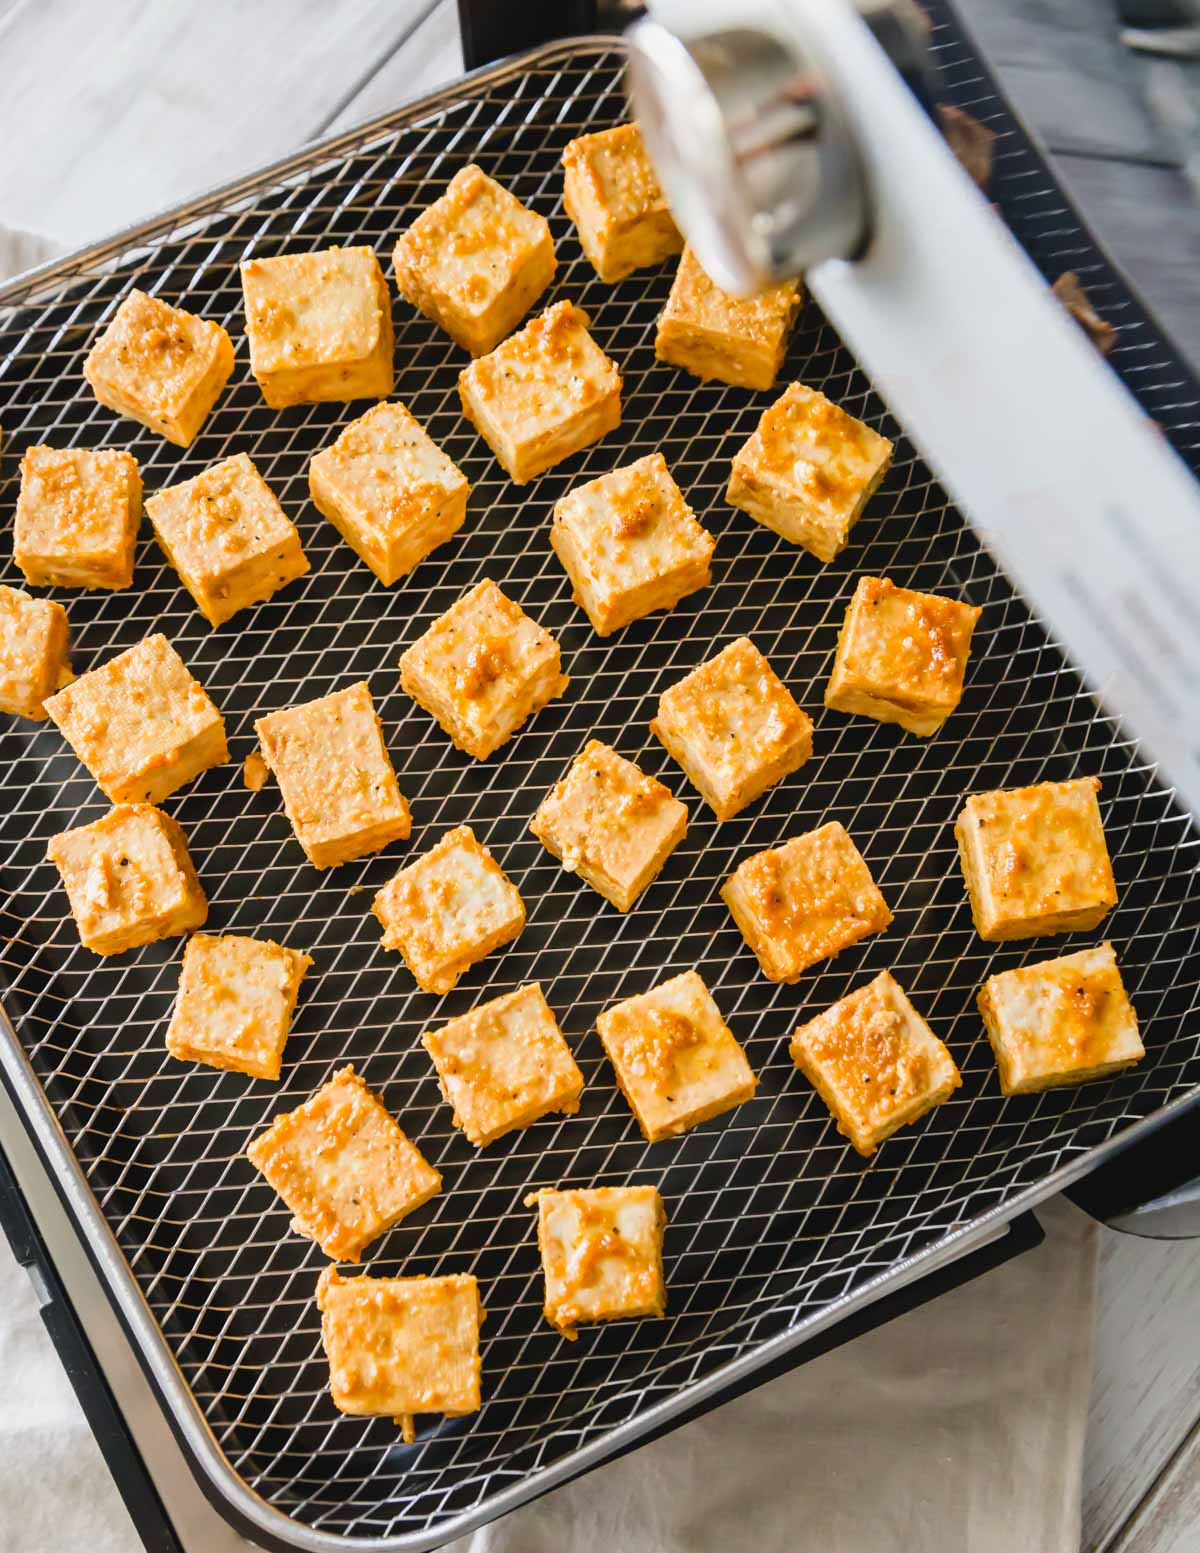 Cubed tofu with tamari, olive oil, garlic and onion powder on a Pampered Chef air fryer tray.